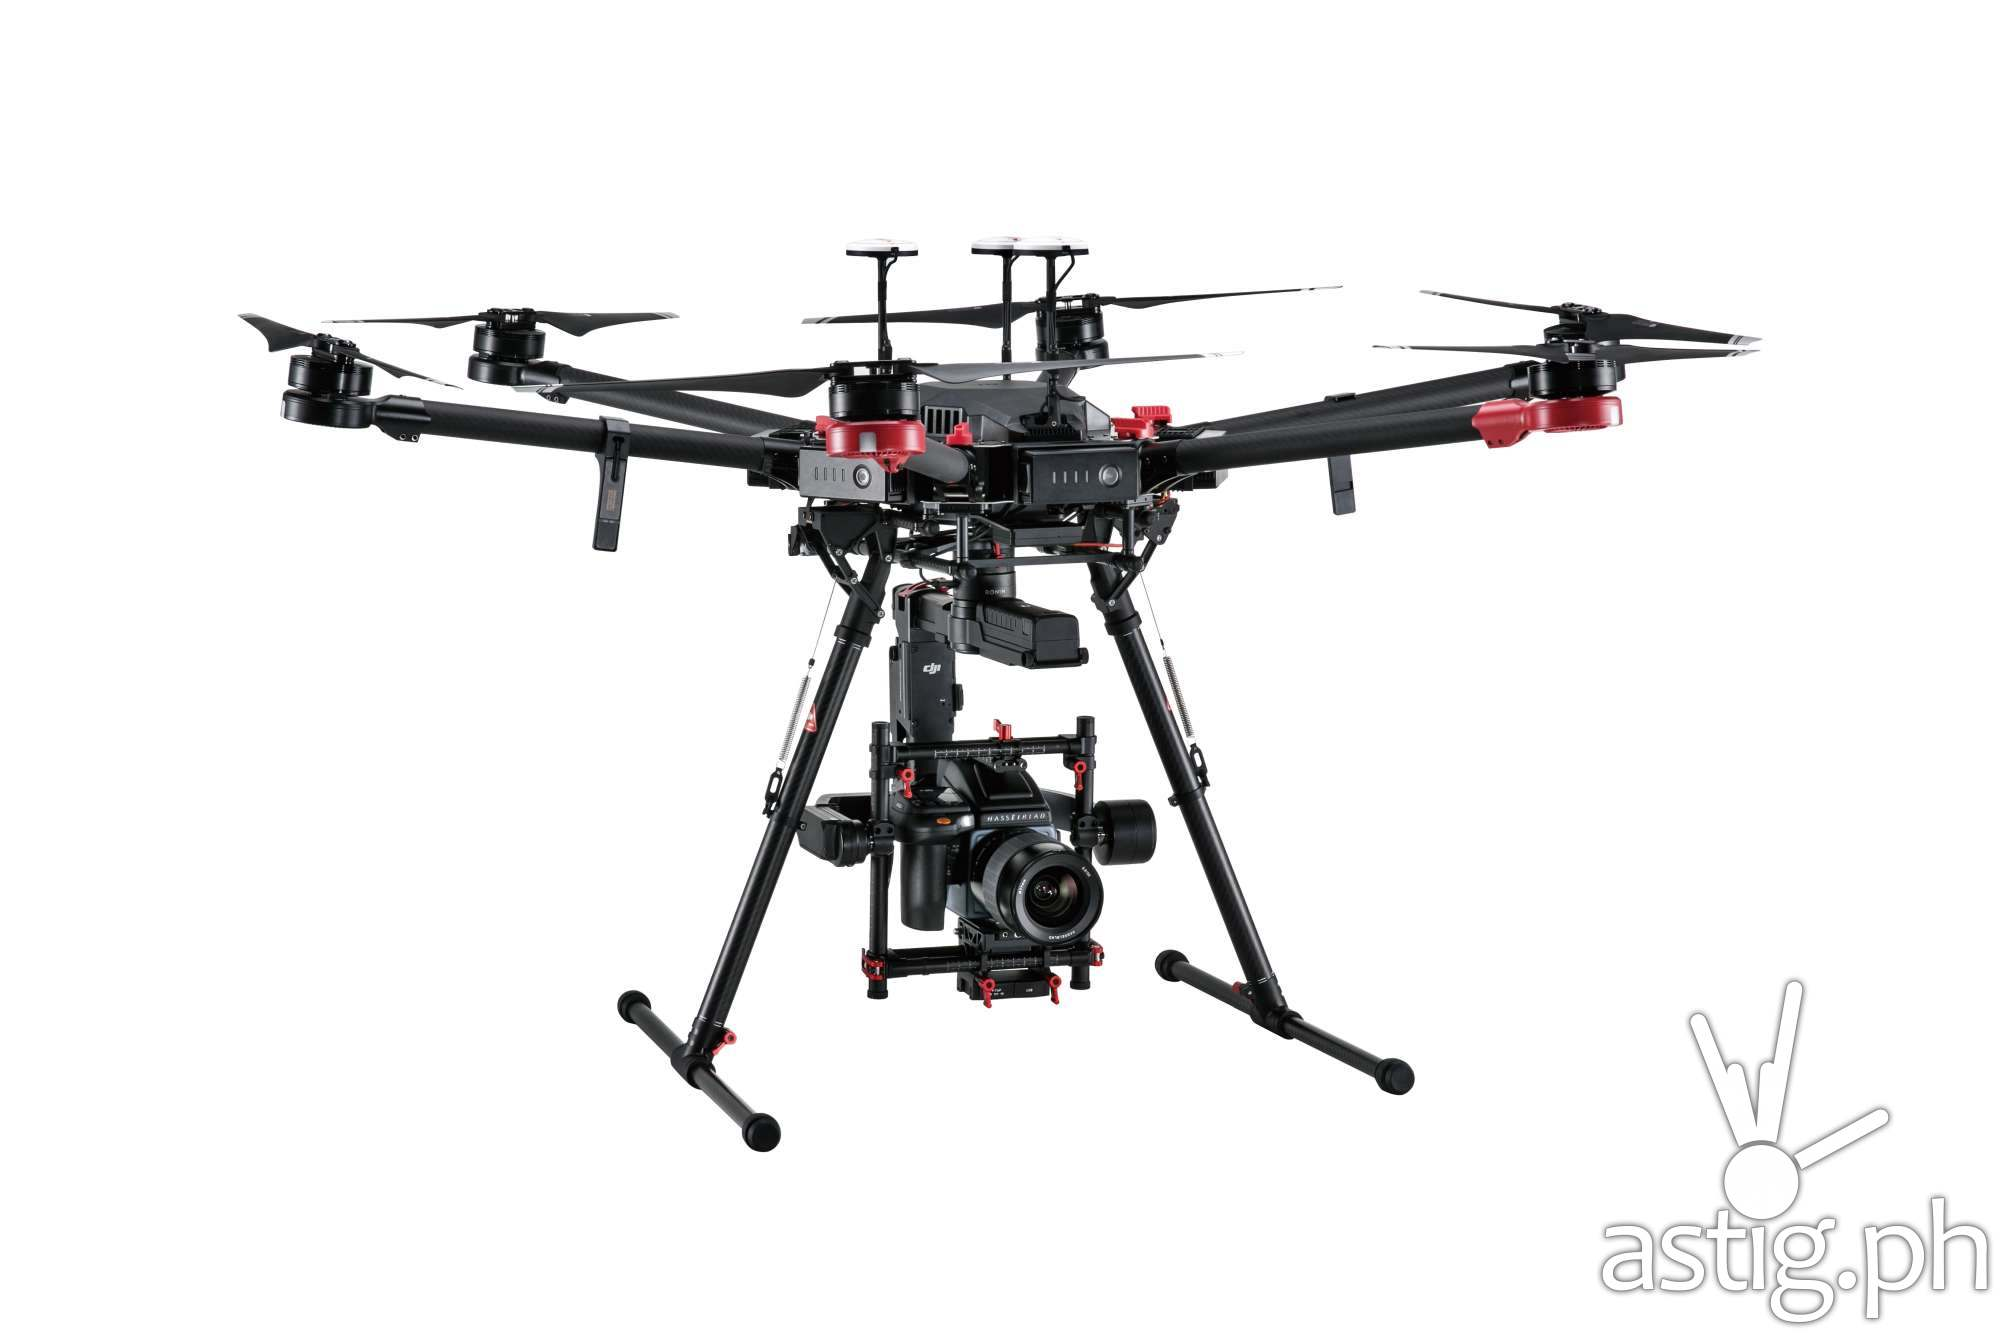 The world's first 100 Megapixel aerial drone: DJI Matrice 600 Pro drone, the Ronin-MX gimbal and the Hasselblad H6D-100c